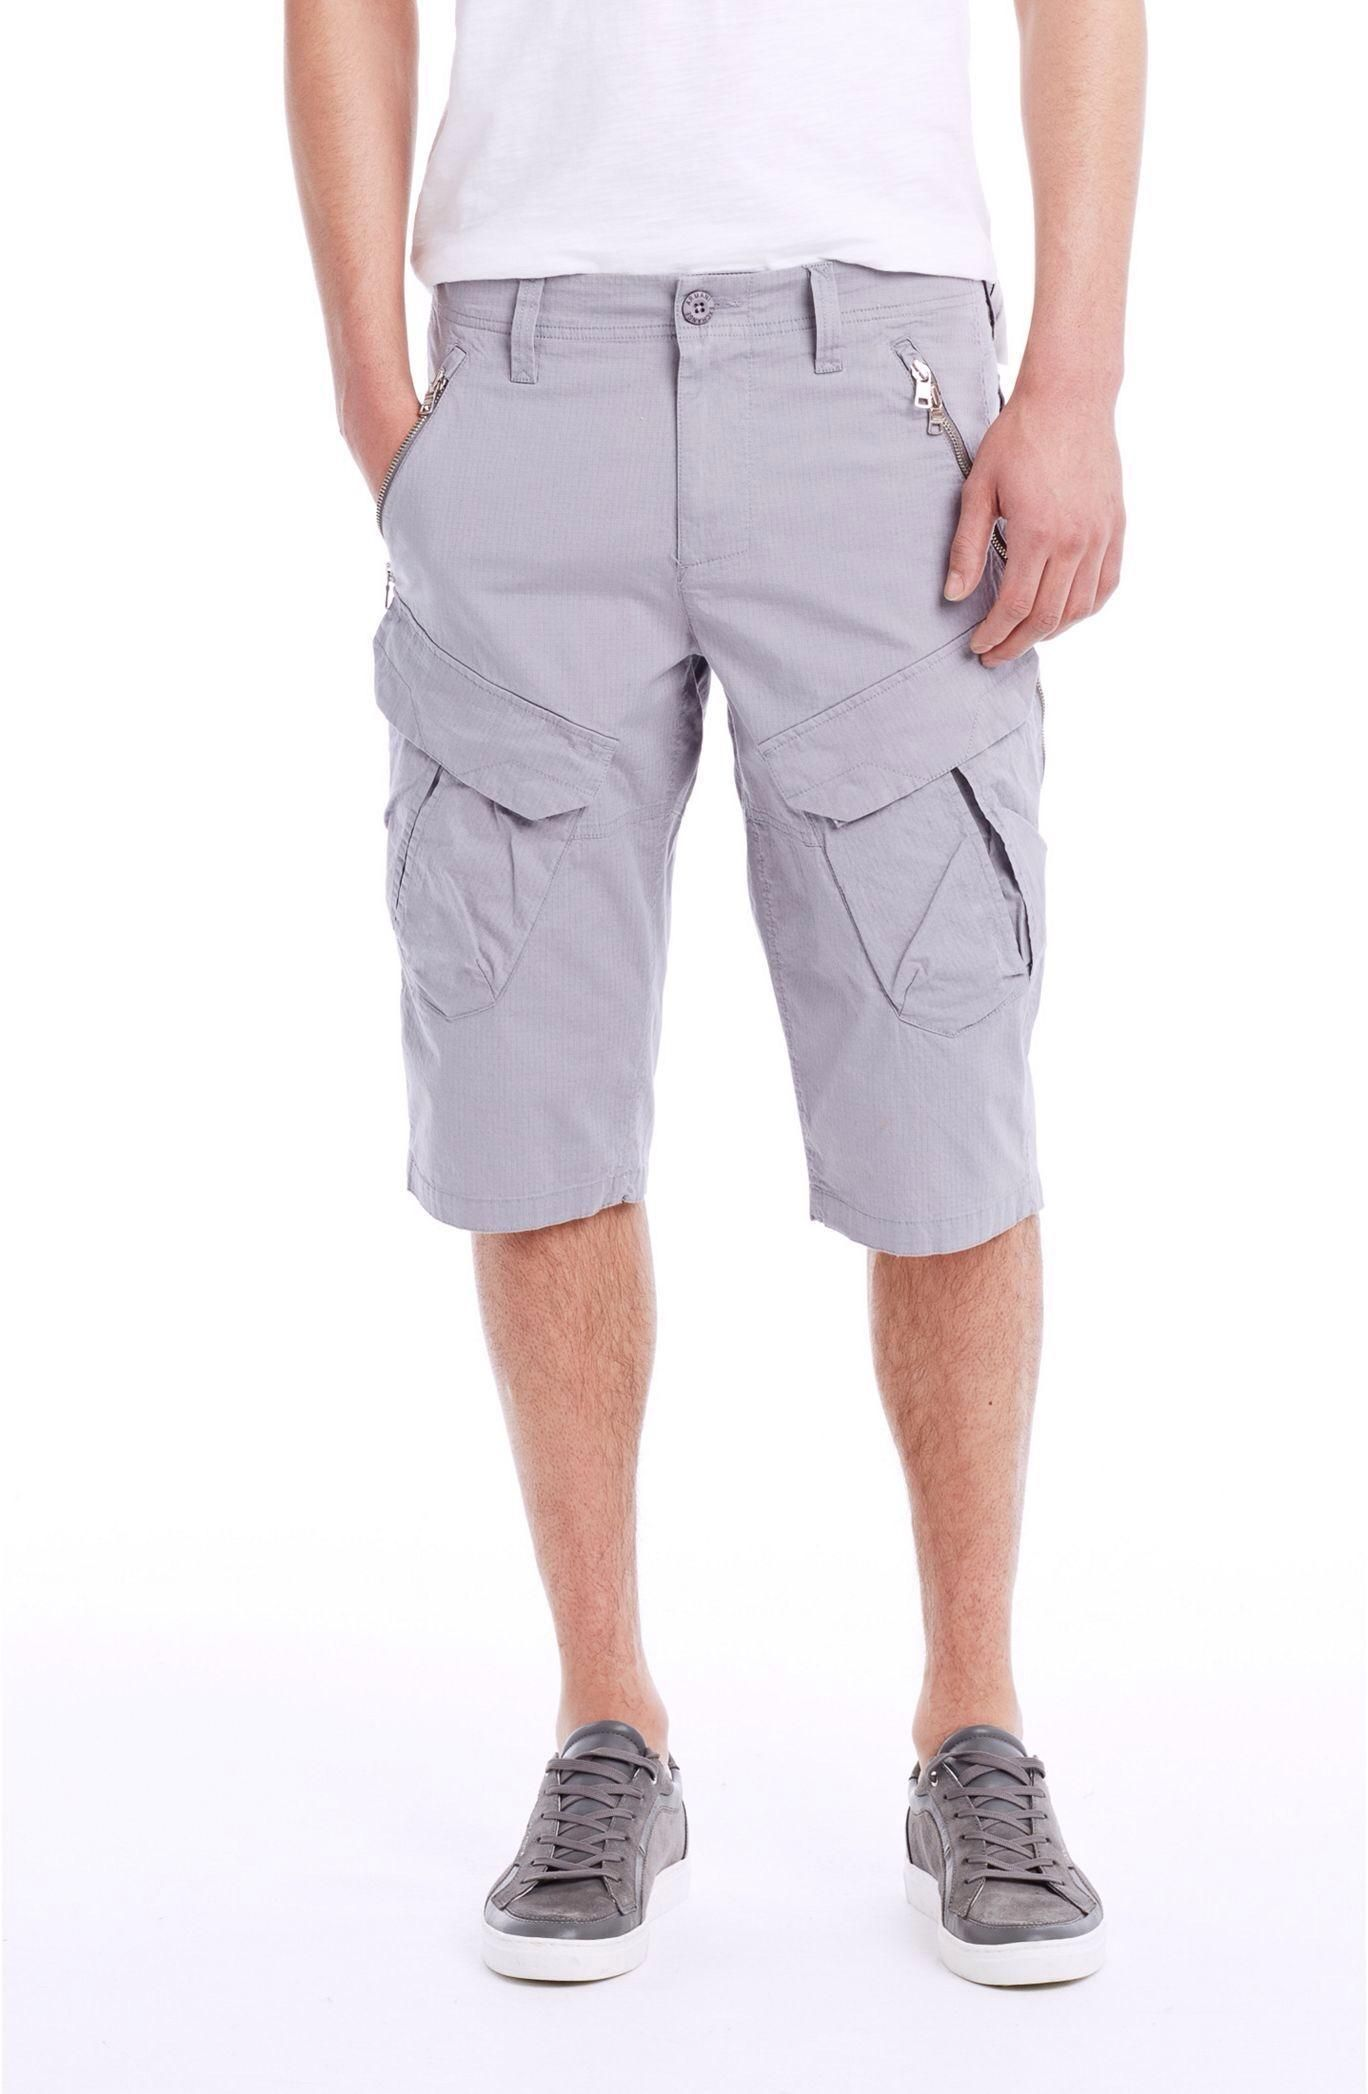 DRESS BETTER THIS SPRING: 10 FASHIONABLE SHORTS YOUR WARDROBE NEEDS faveable.com